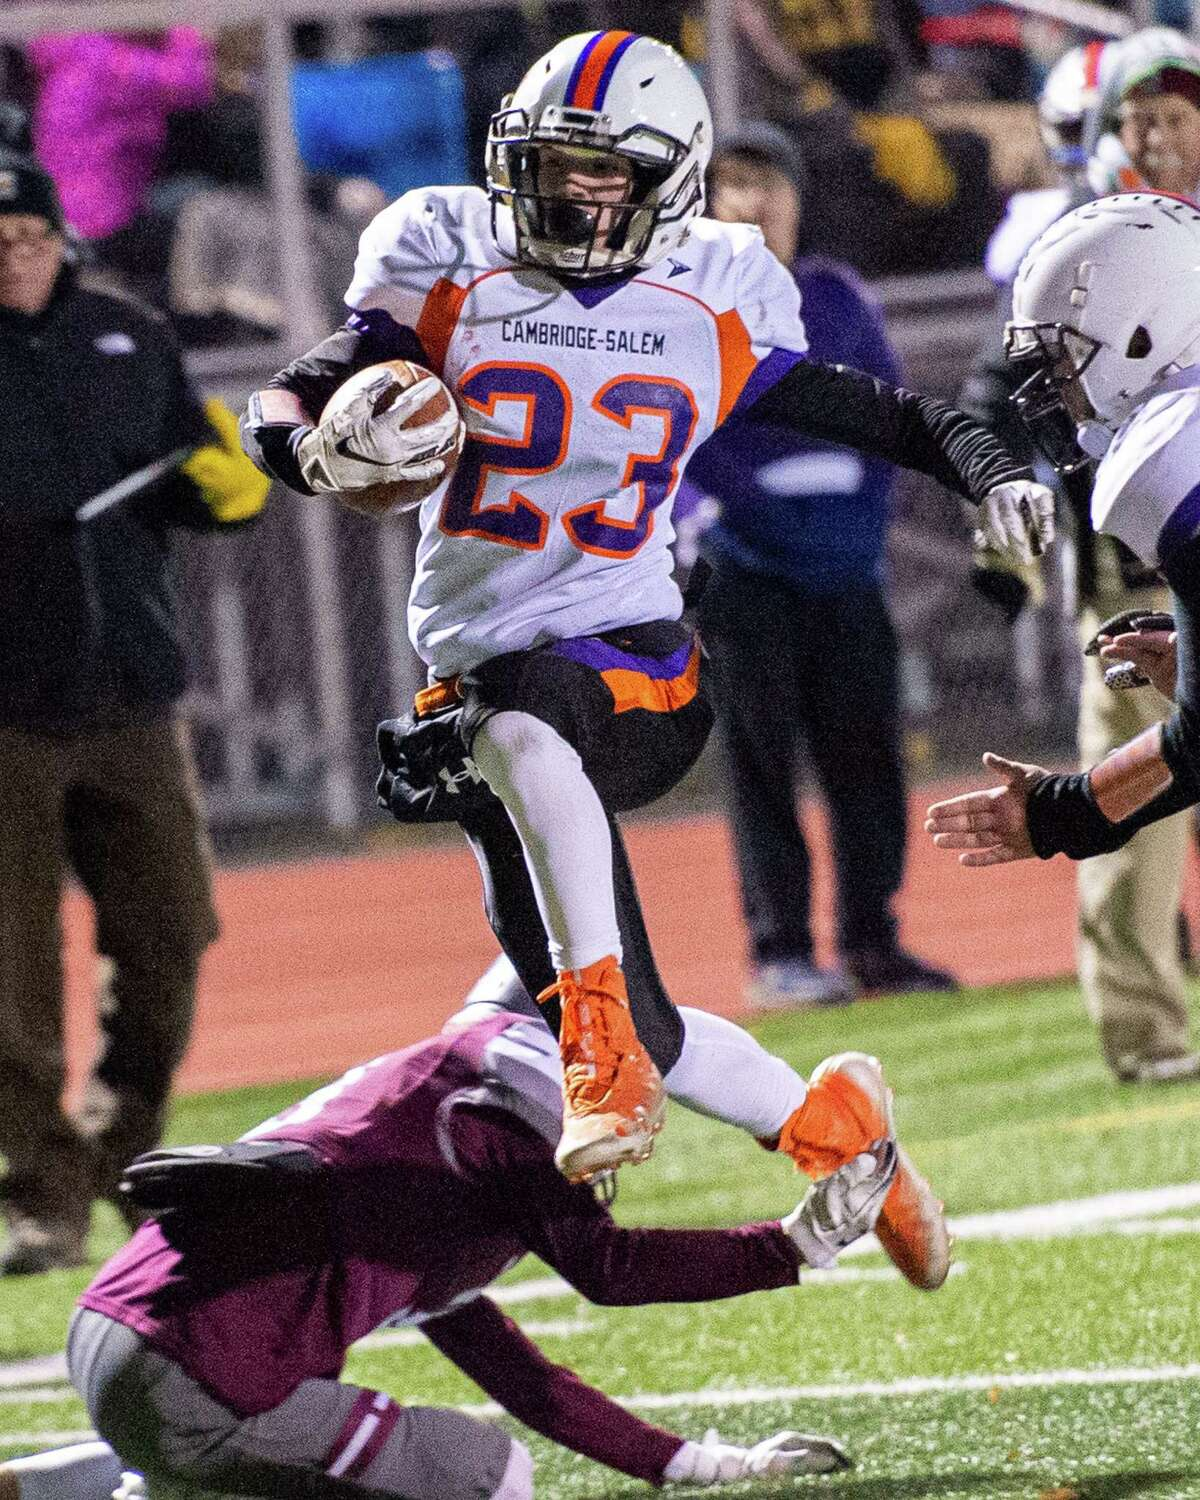 Cambridge/Salem has been a fixture in the playoffs since the early 1990s, as it was in 2019 when running back Kaedin Ogilvie and his team took on Stillwater in the Class C Super Bowl. This week's game against Warrensburg/North Warren/Bolton could go a long way toward determining if that playoff streak ends.